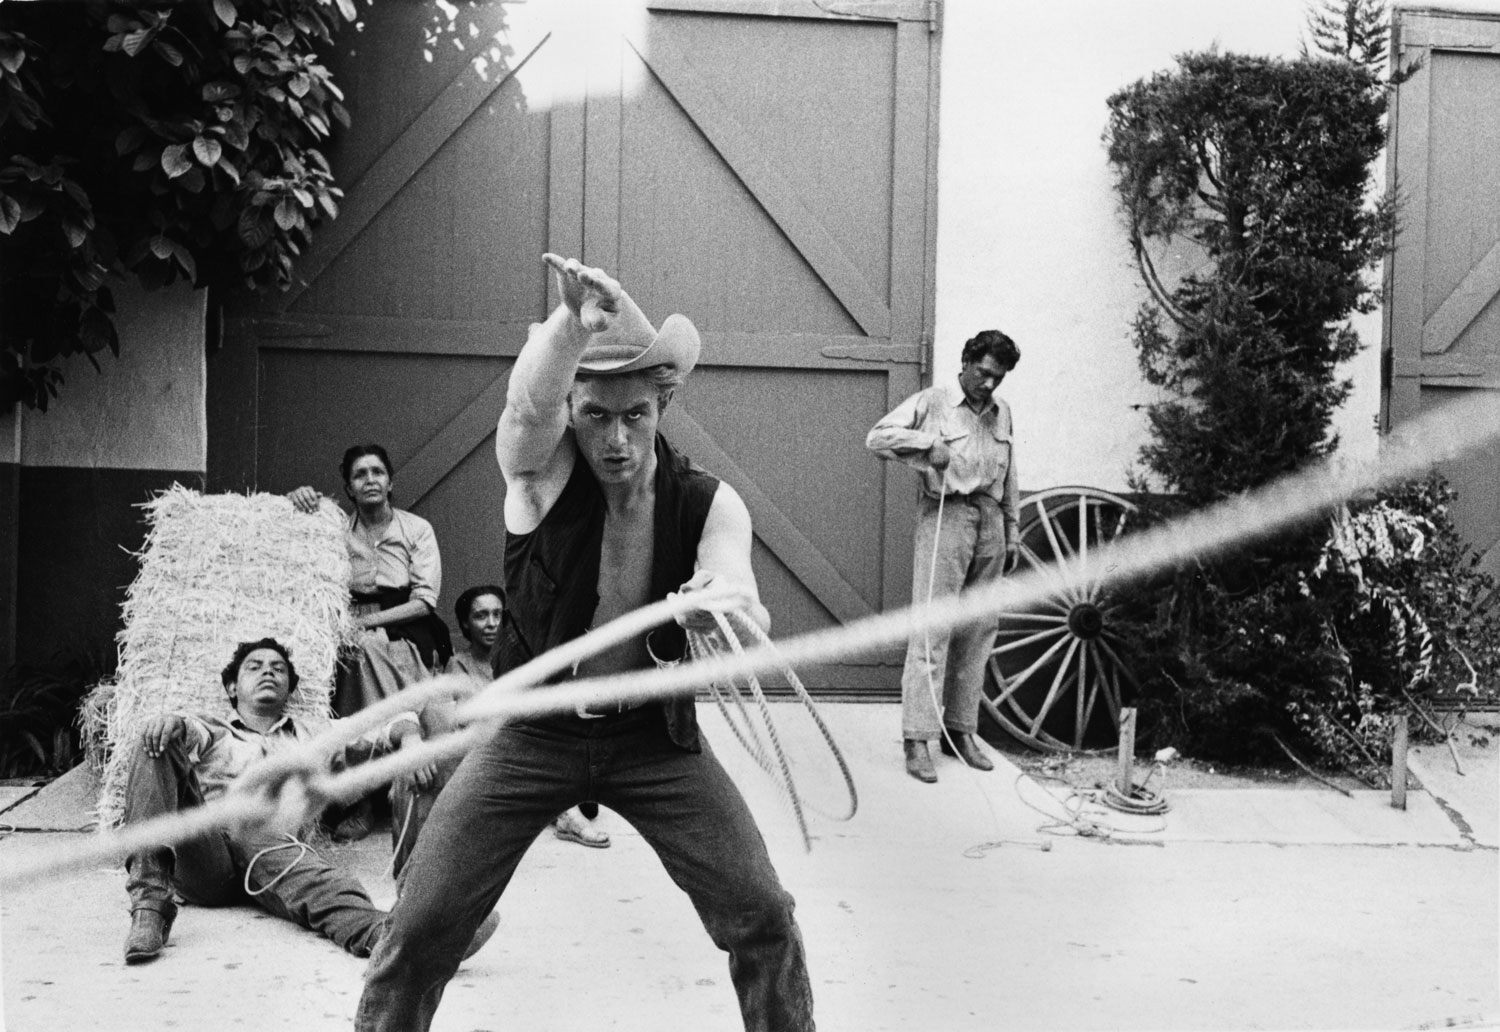 James Dean practices lassoing on the set of Giant, which earned him a Supporting Actor nomination.